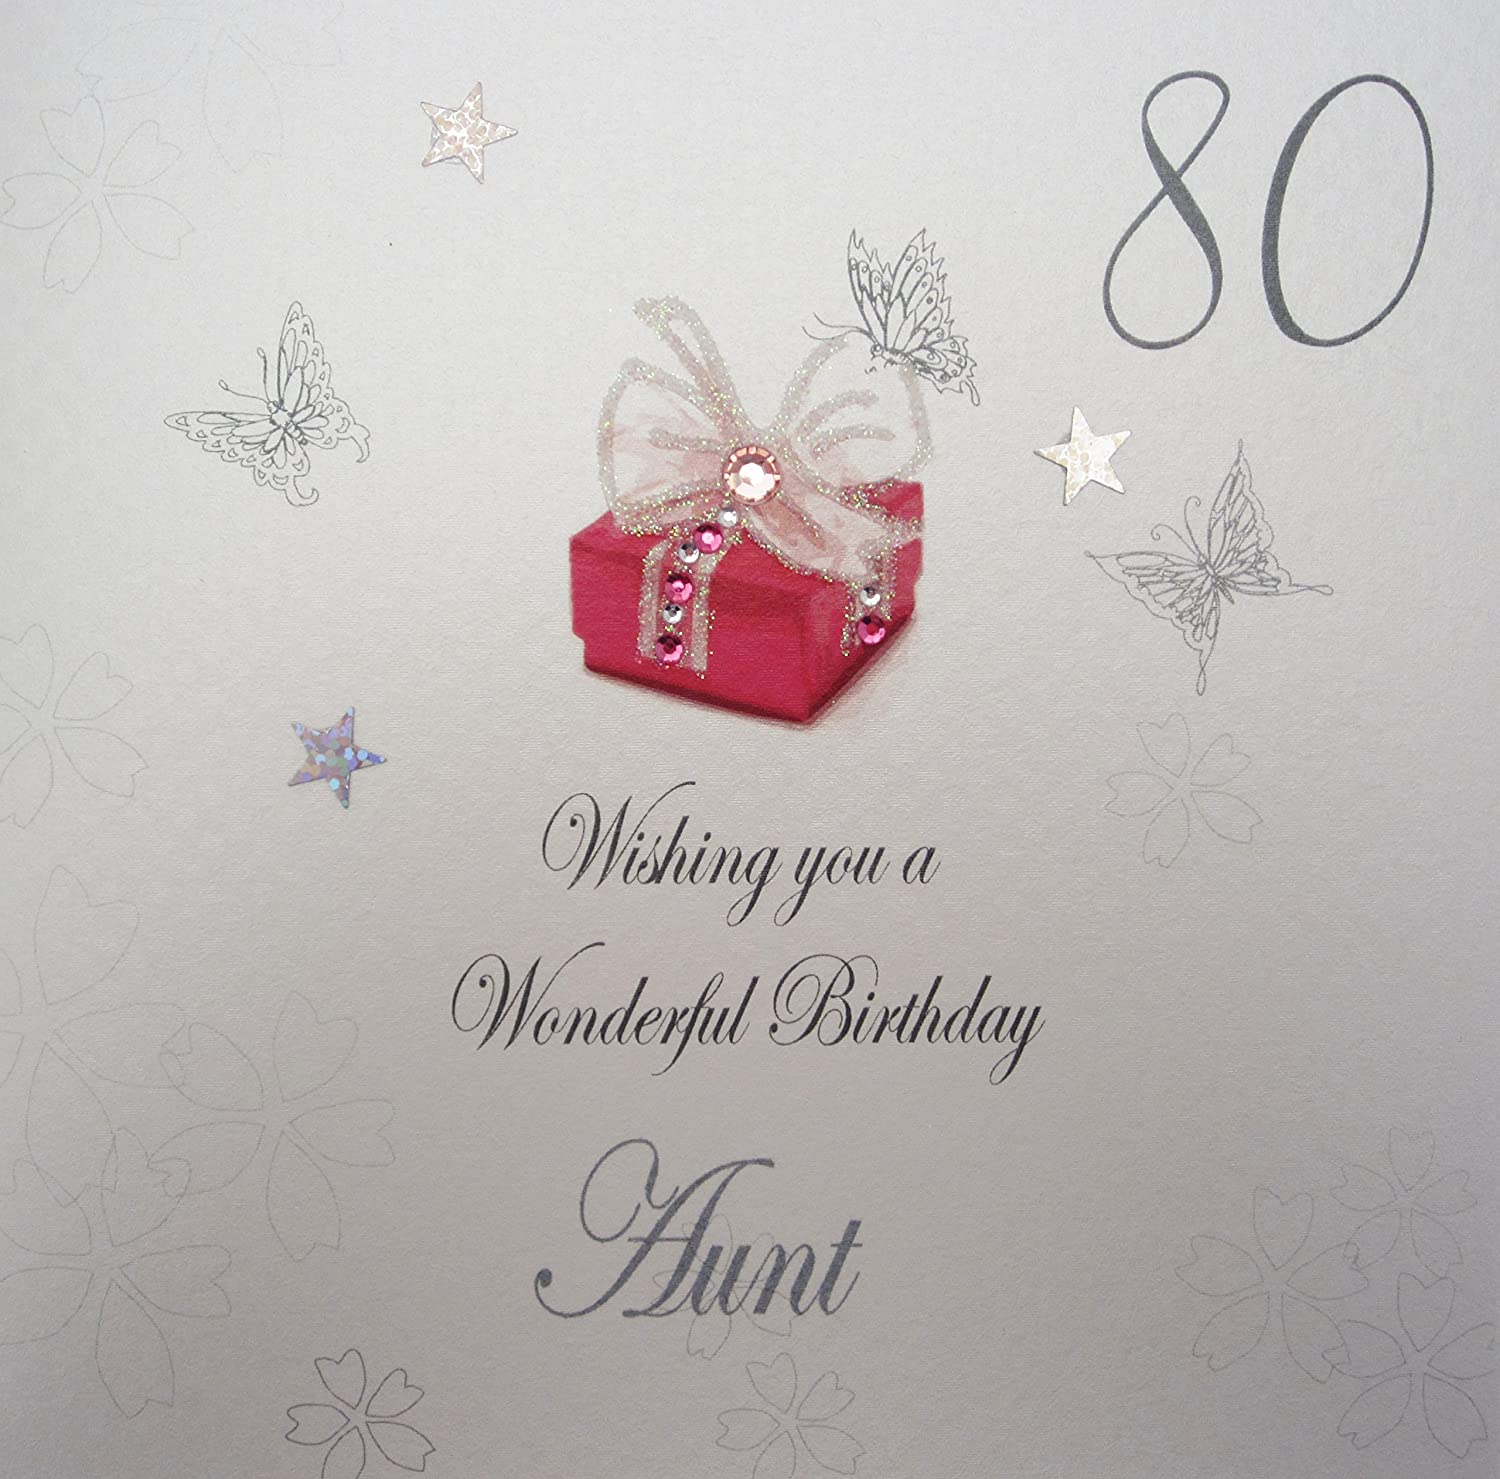 Auntie 80th Birthday Card with removable Laminate Amazoncouk – 80 Birthday Card